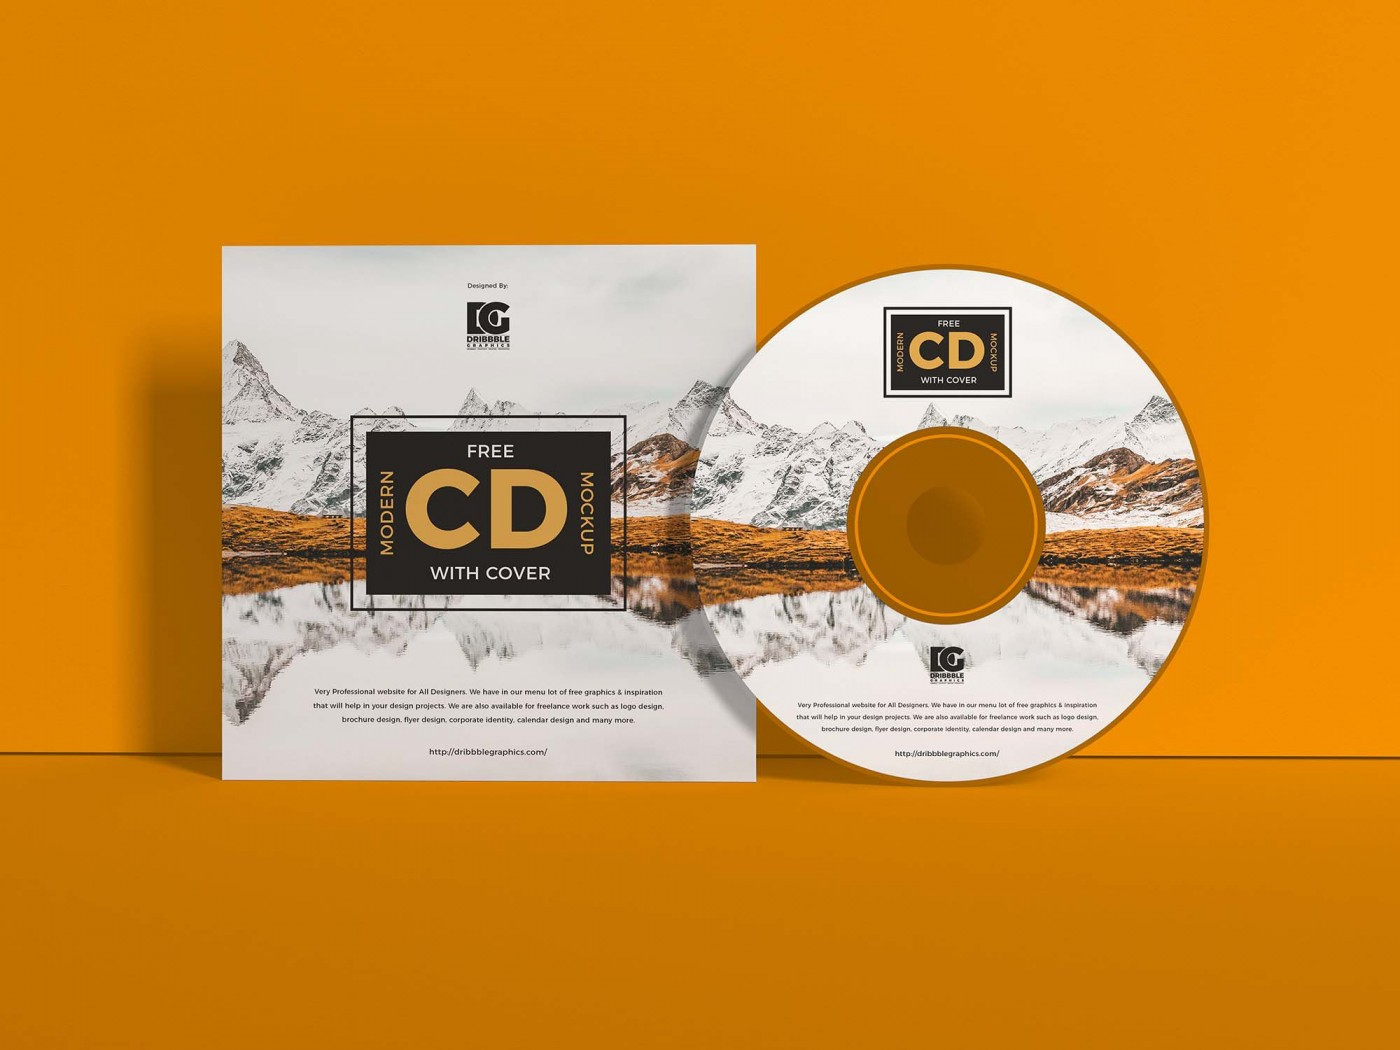 002 Stunning Music Cd Cover Design Template Free Download Example 1400